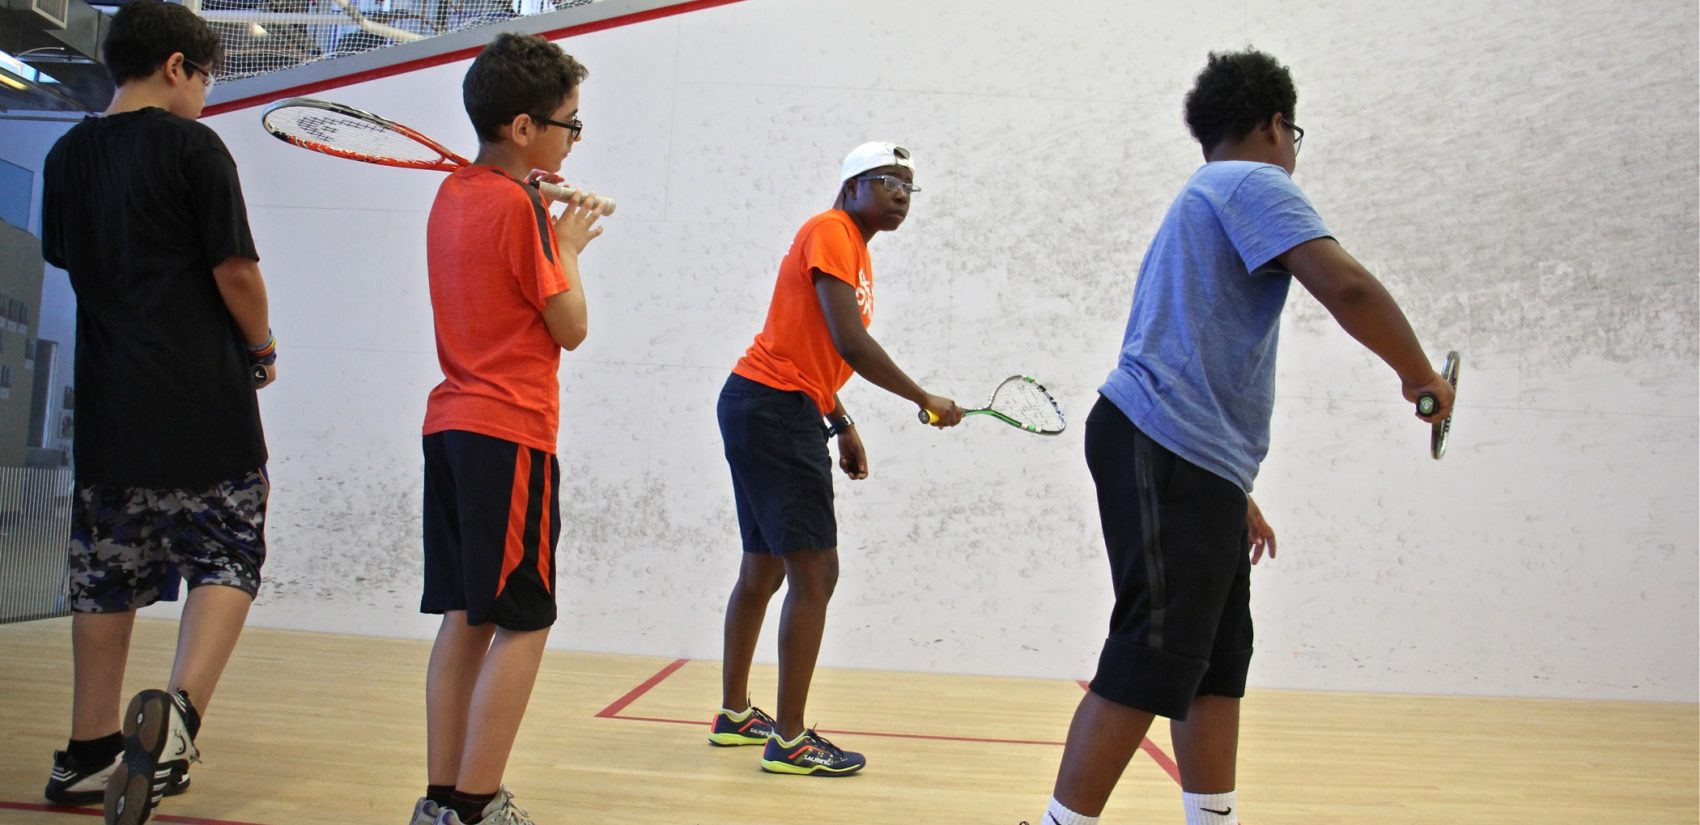 Squash coach Tempest Bowden runs drills with middle schoolers. (Emma Lee/WHYY)